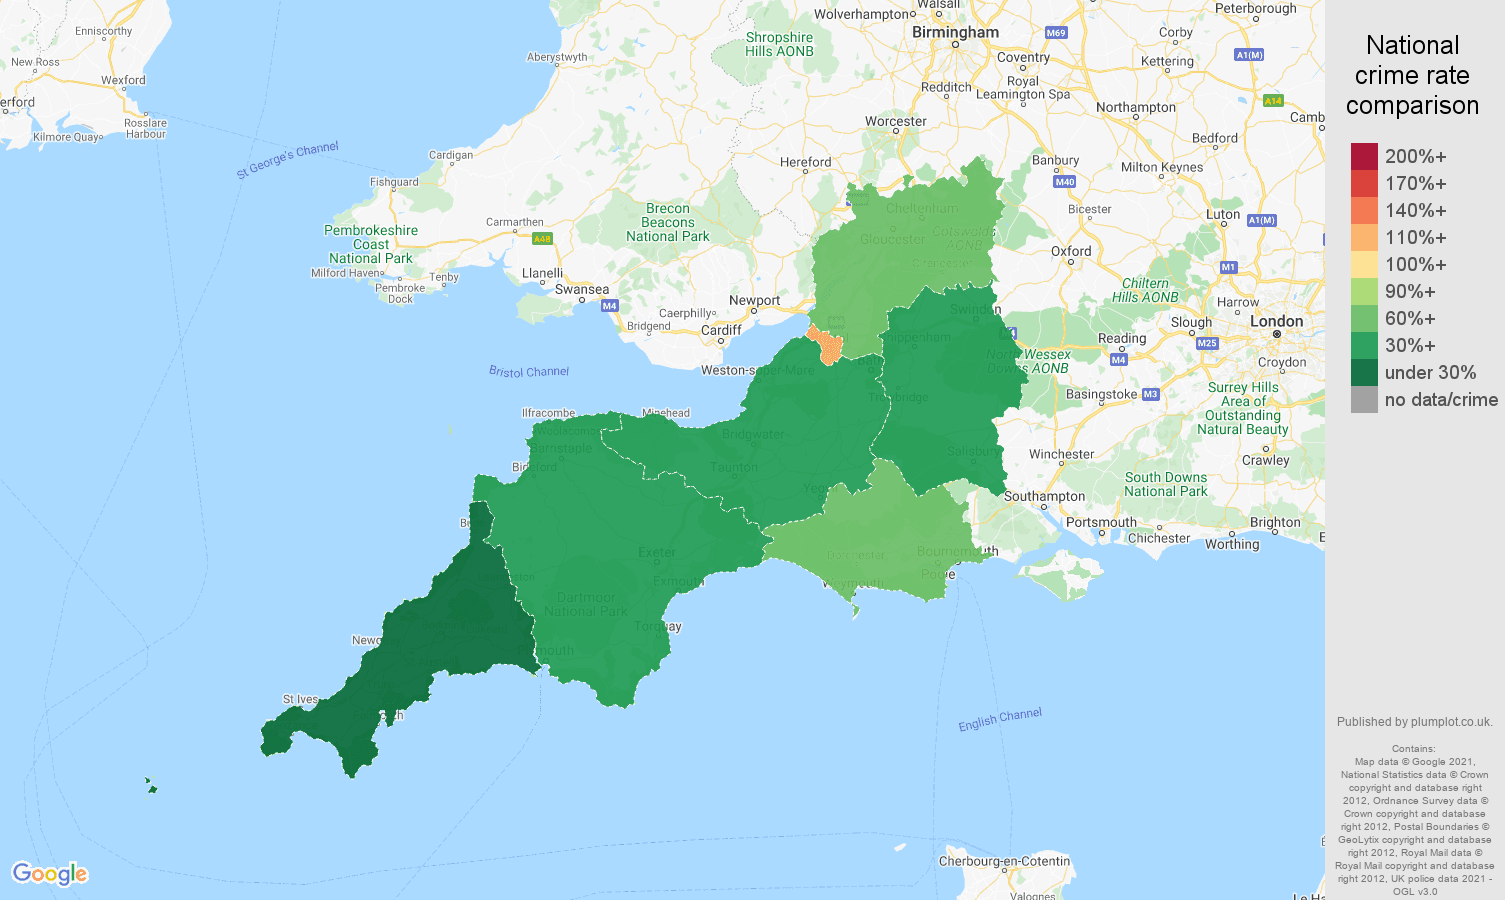 South West vehicle crime rate comparison map